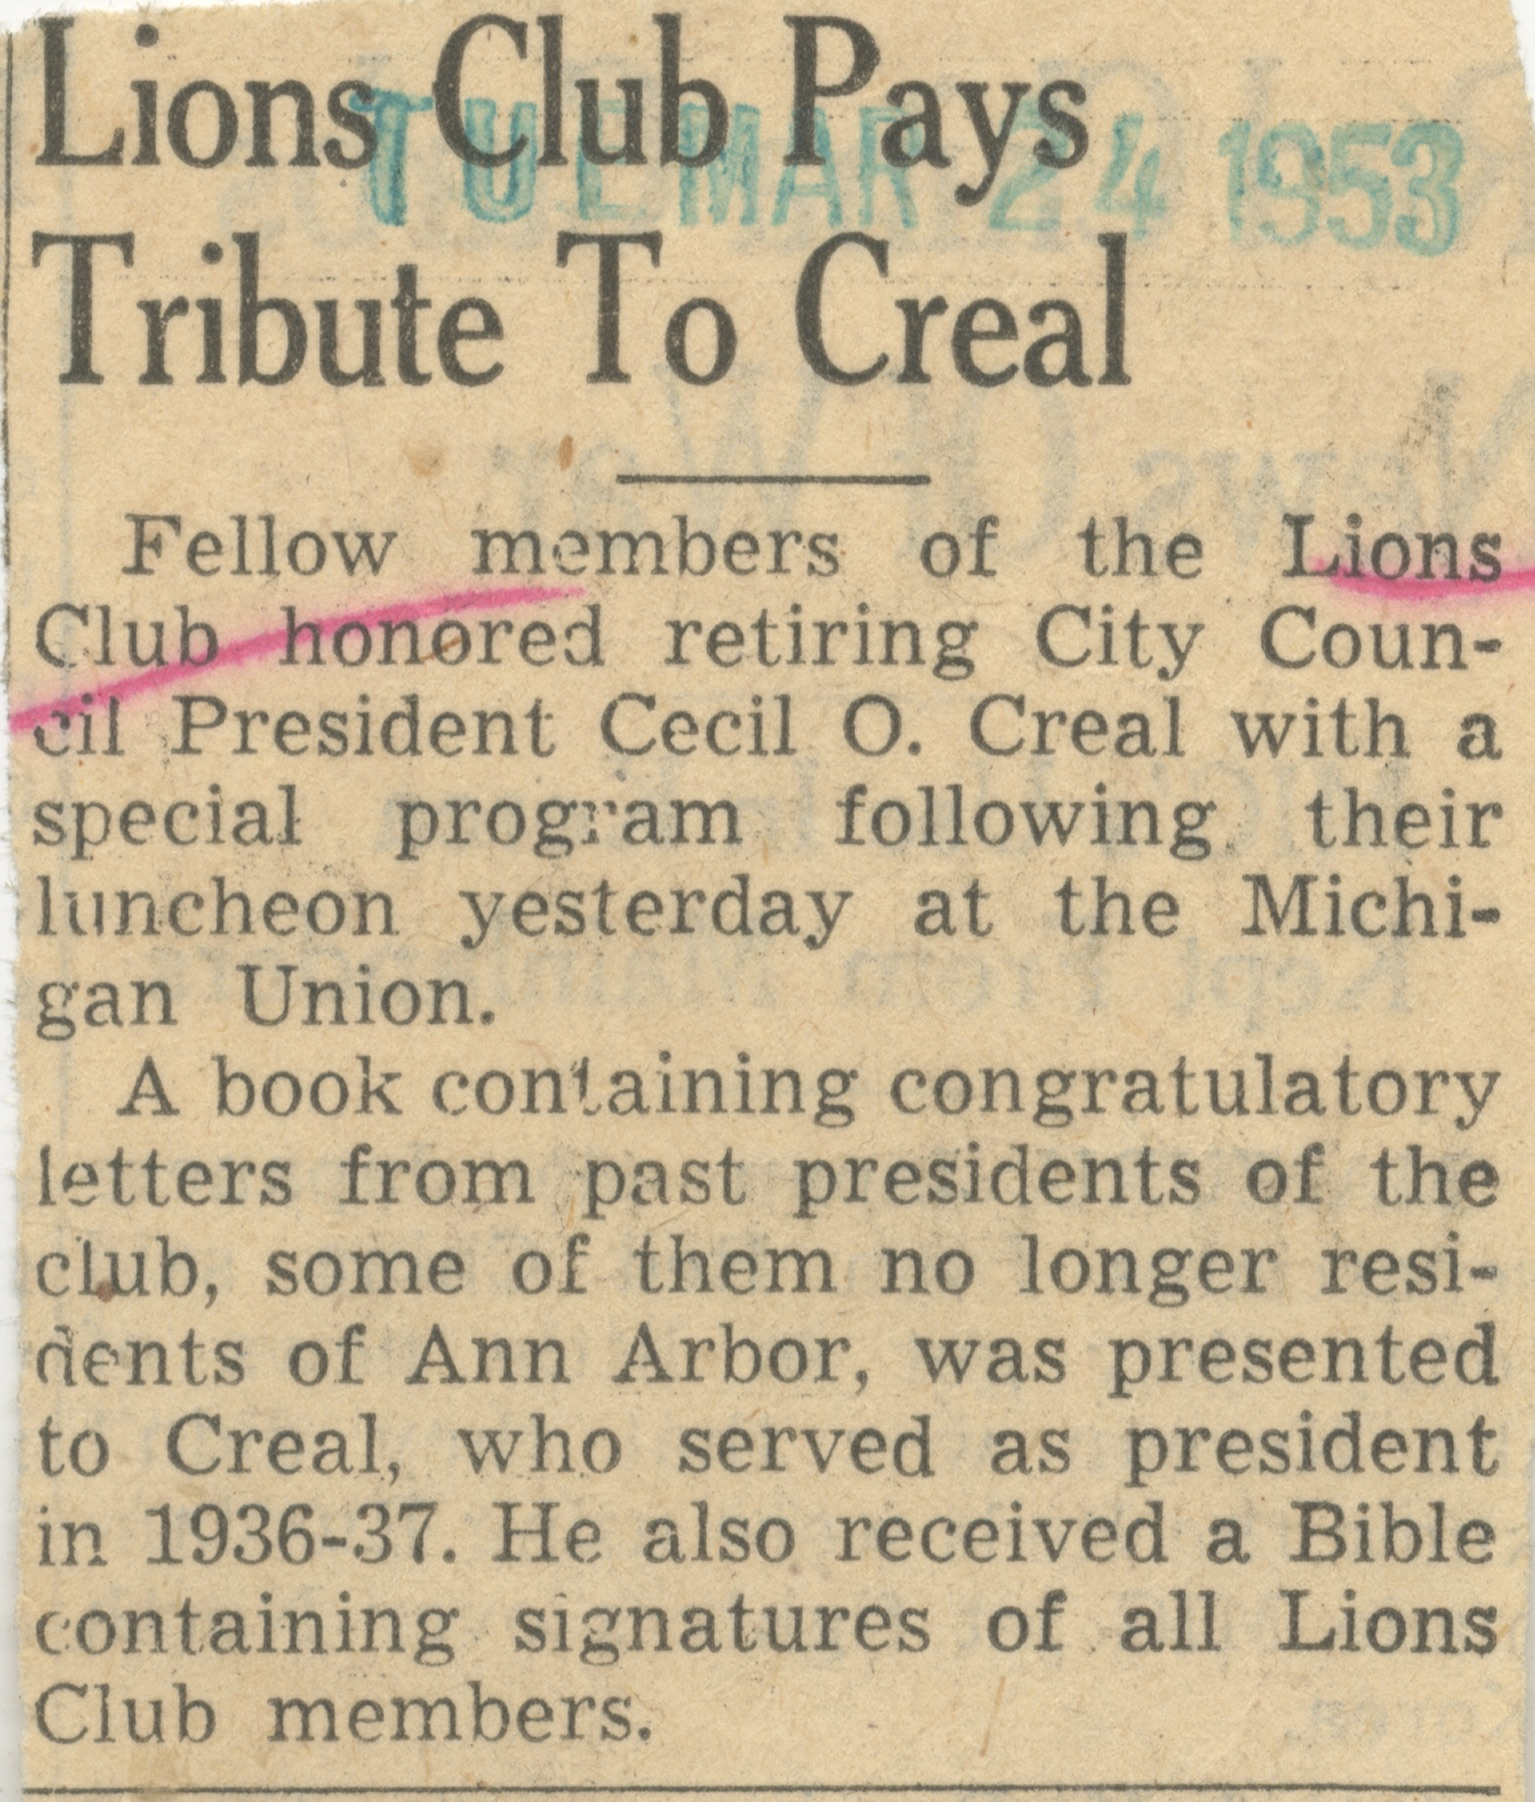 Lions Club Pays Tribute To Creal image